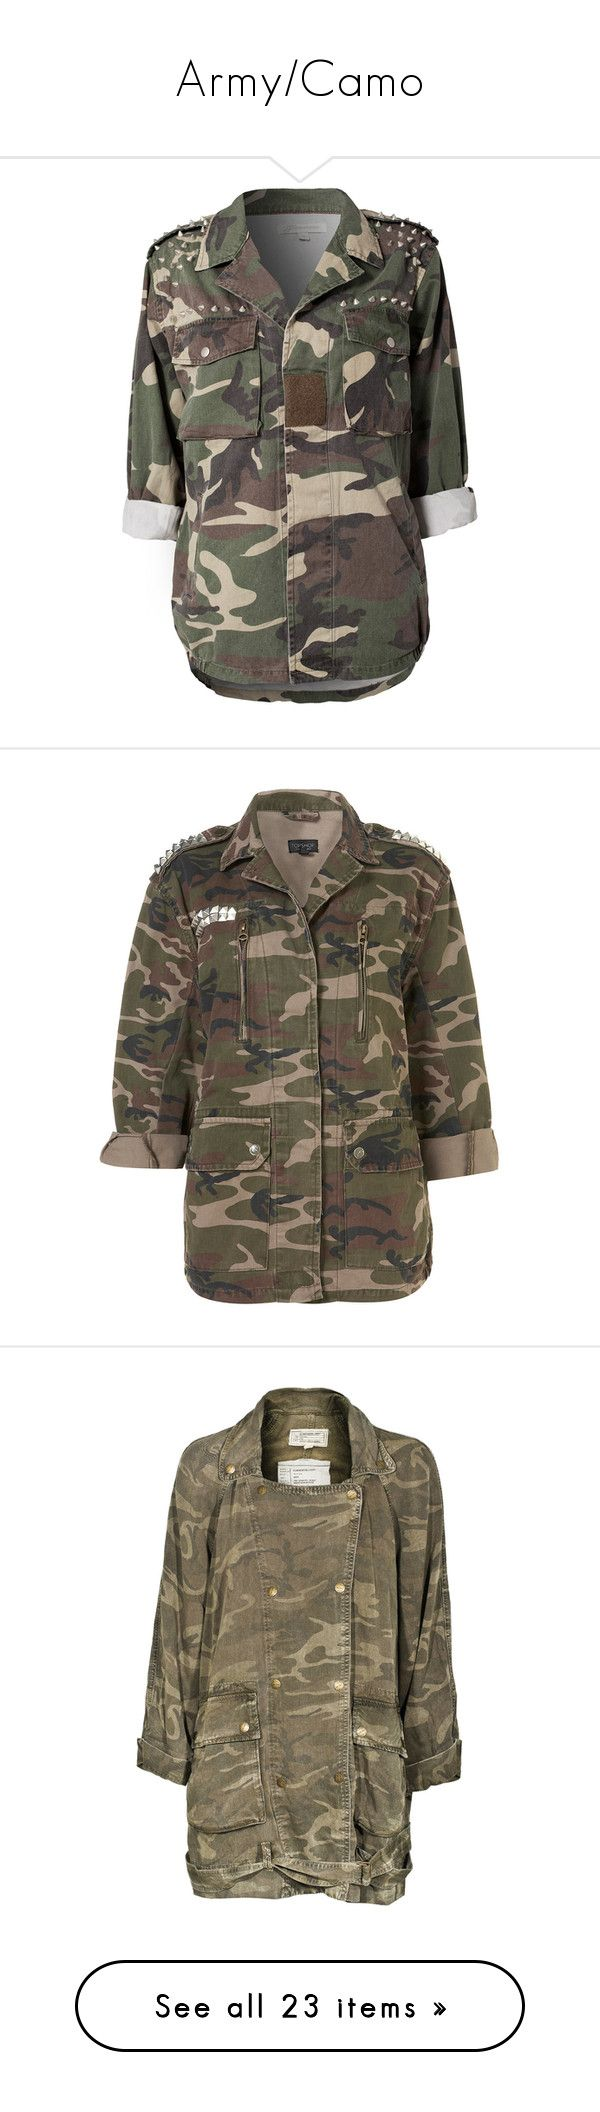 """""""Army/Camo"""" by jasminelara ❤ liked on Polyvore featuring outerwear, jackets, tops, shirts, coats & jackets, camouflage, oversized camo jacket, army camo jacket, studded military jacket and black jacket"""